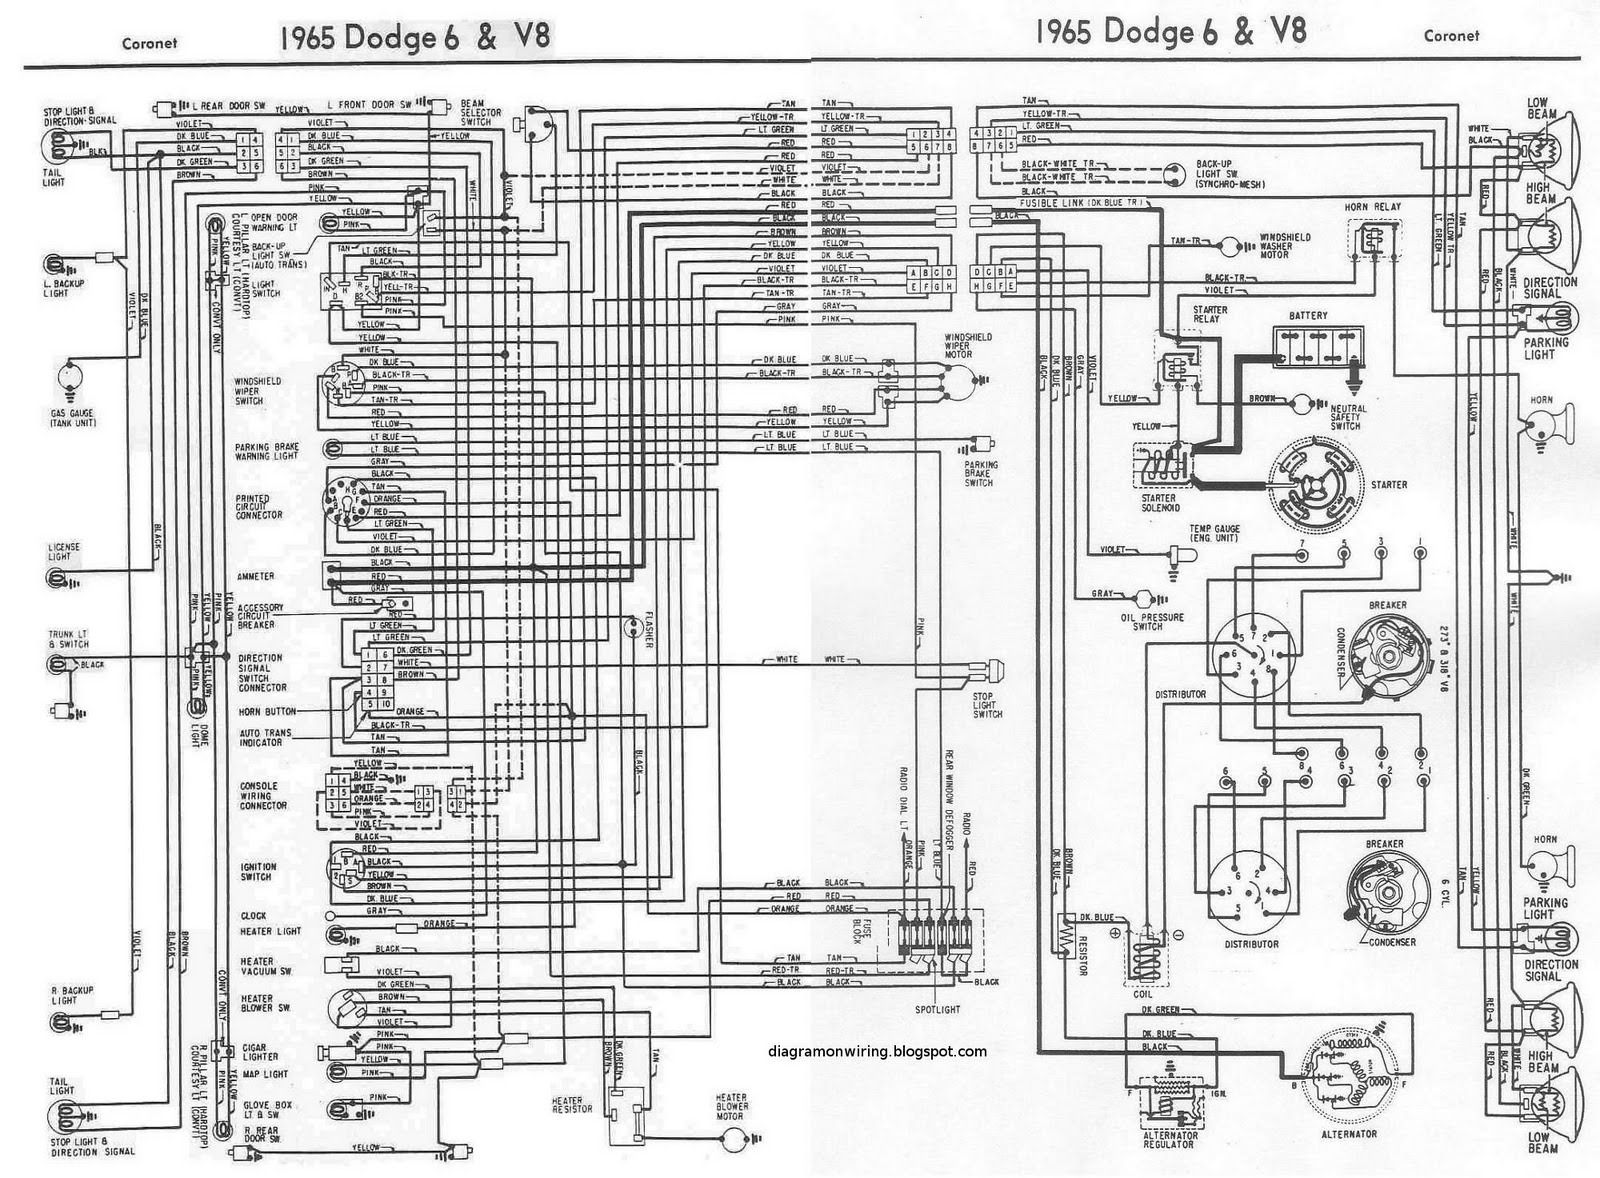 Marvelous 1969 Charger Wiring Diagram Wiring Diagram B2 Wiring 101 Capemaxxcnl